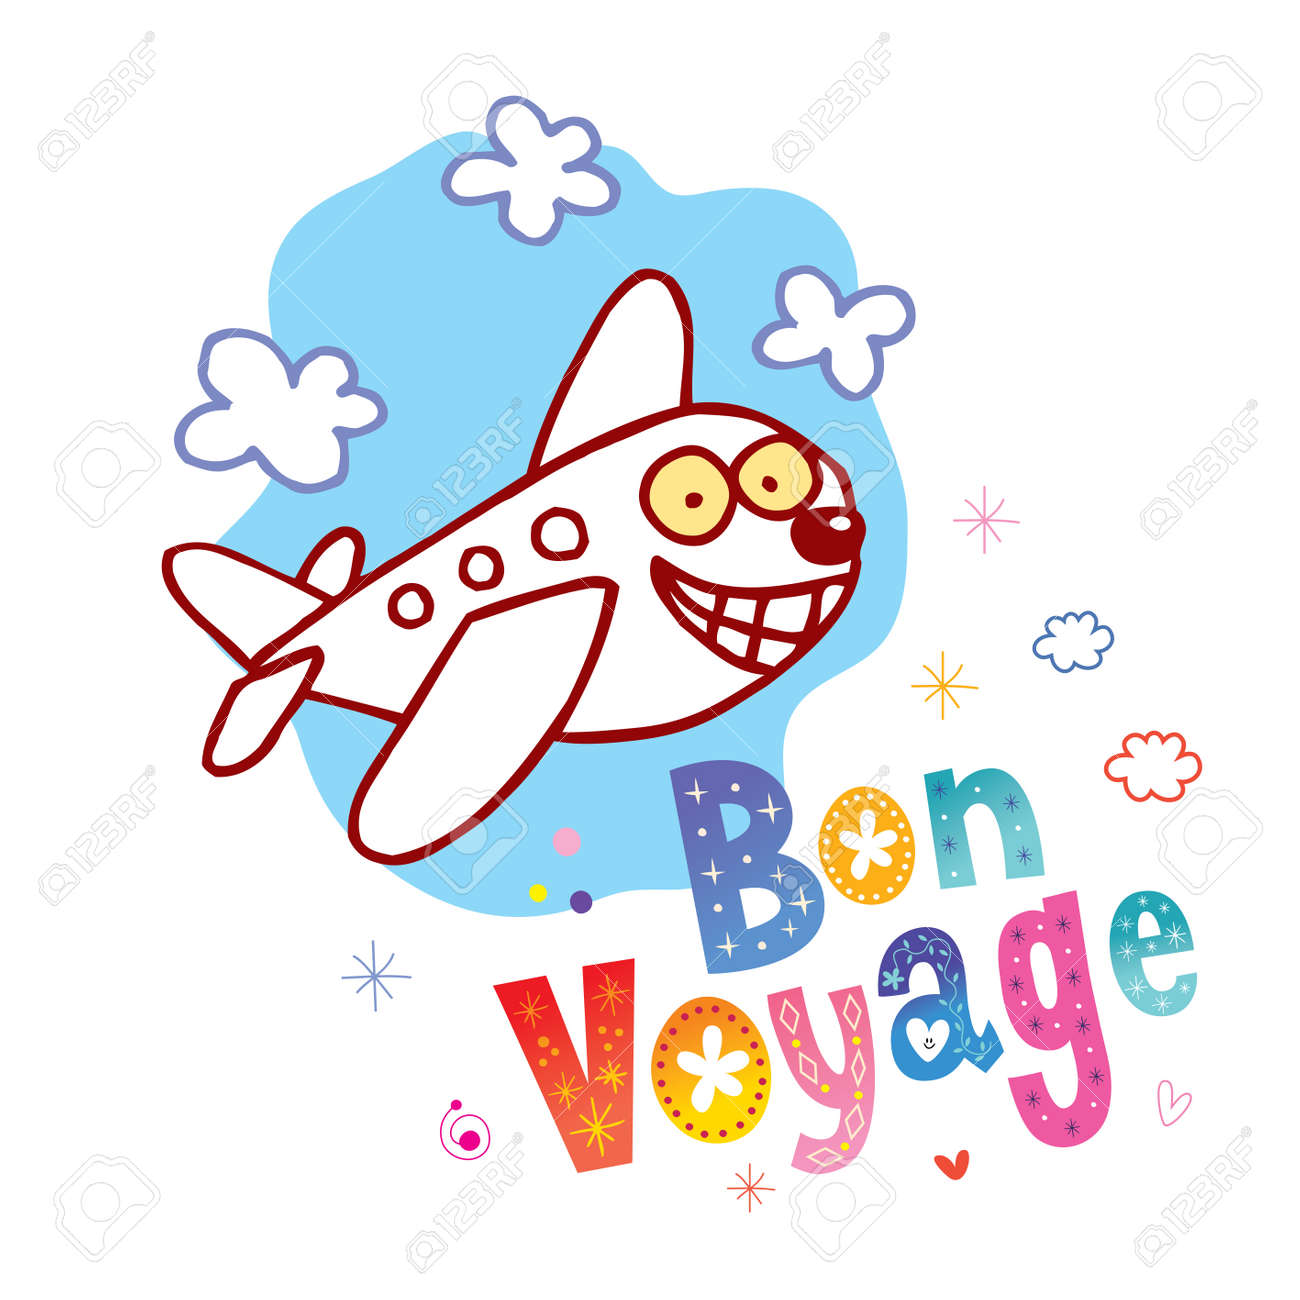 Bon Voyage - have a nice trip in French - cute airplane character mascot travel tourism illustration - 104586912